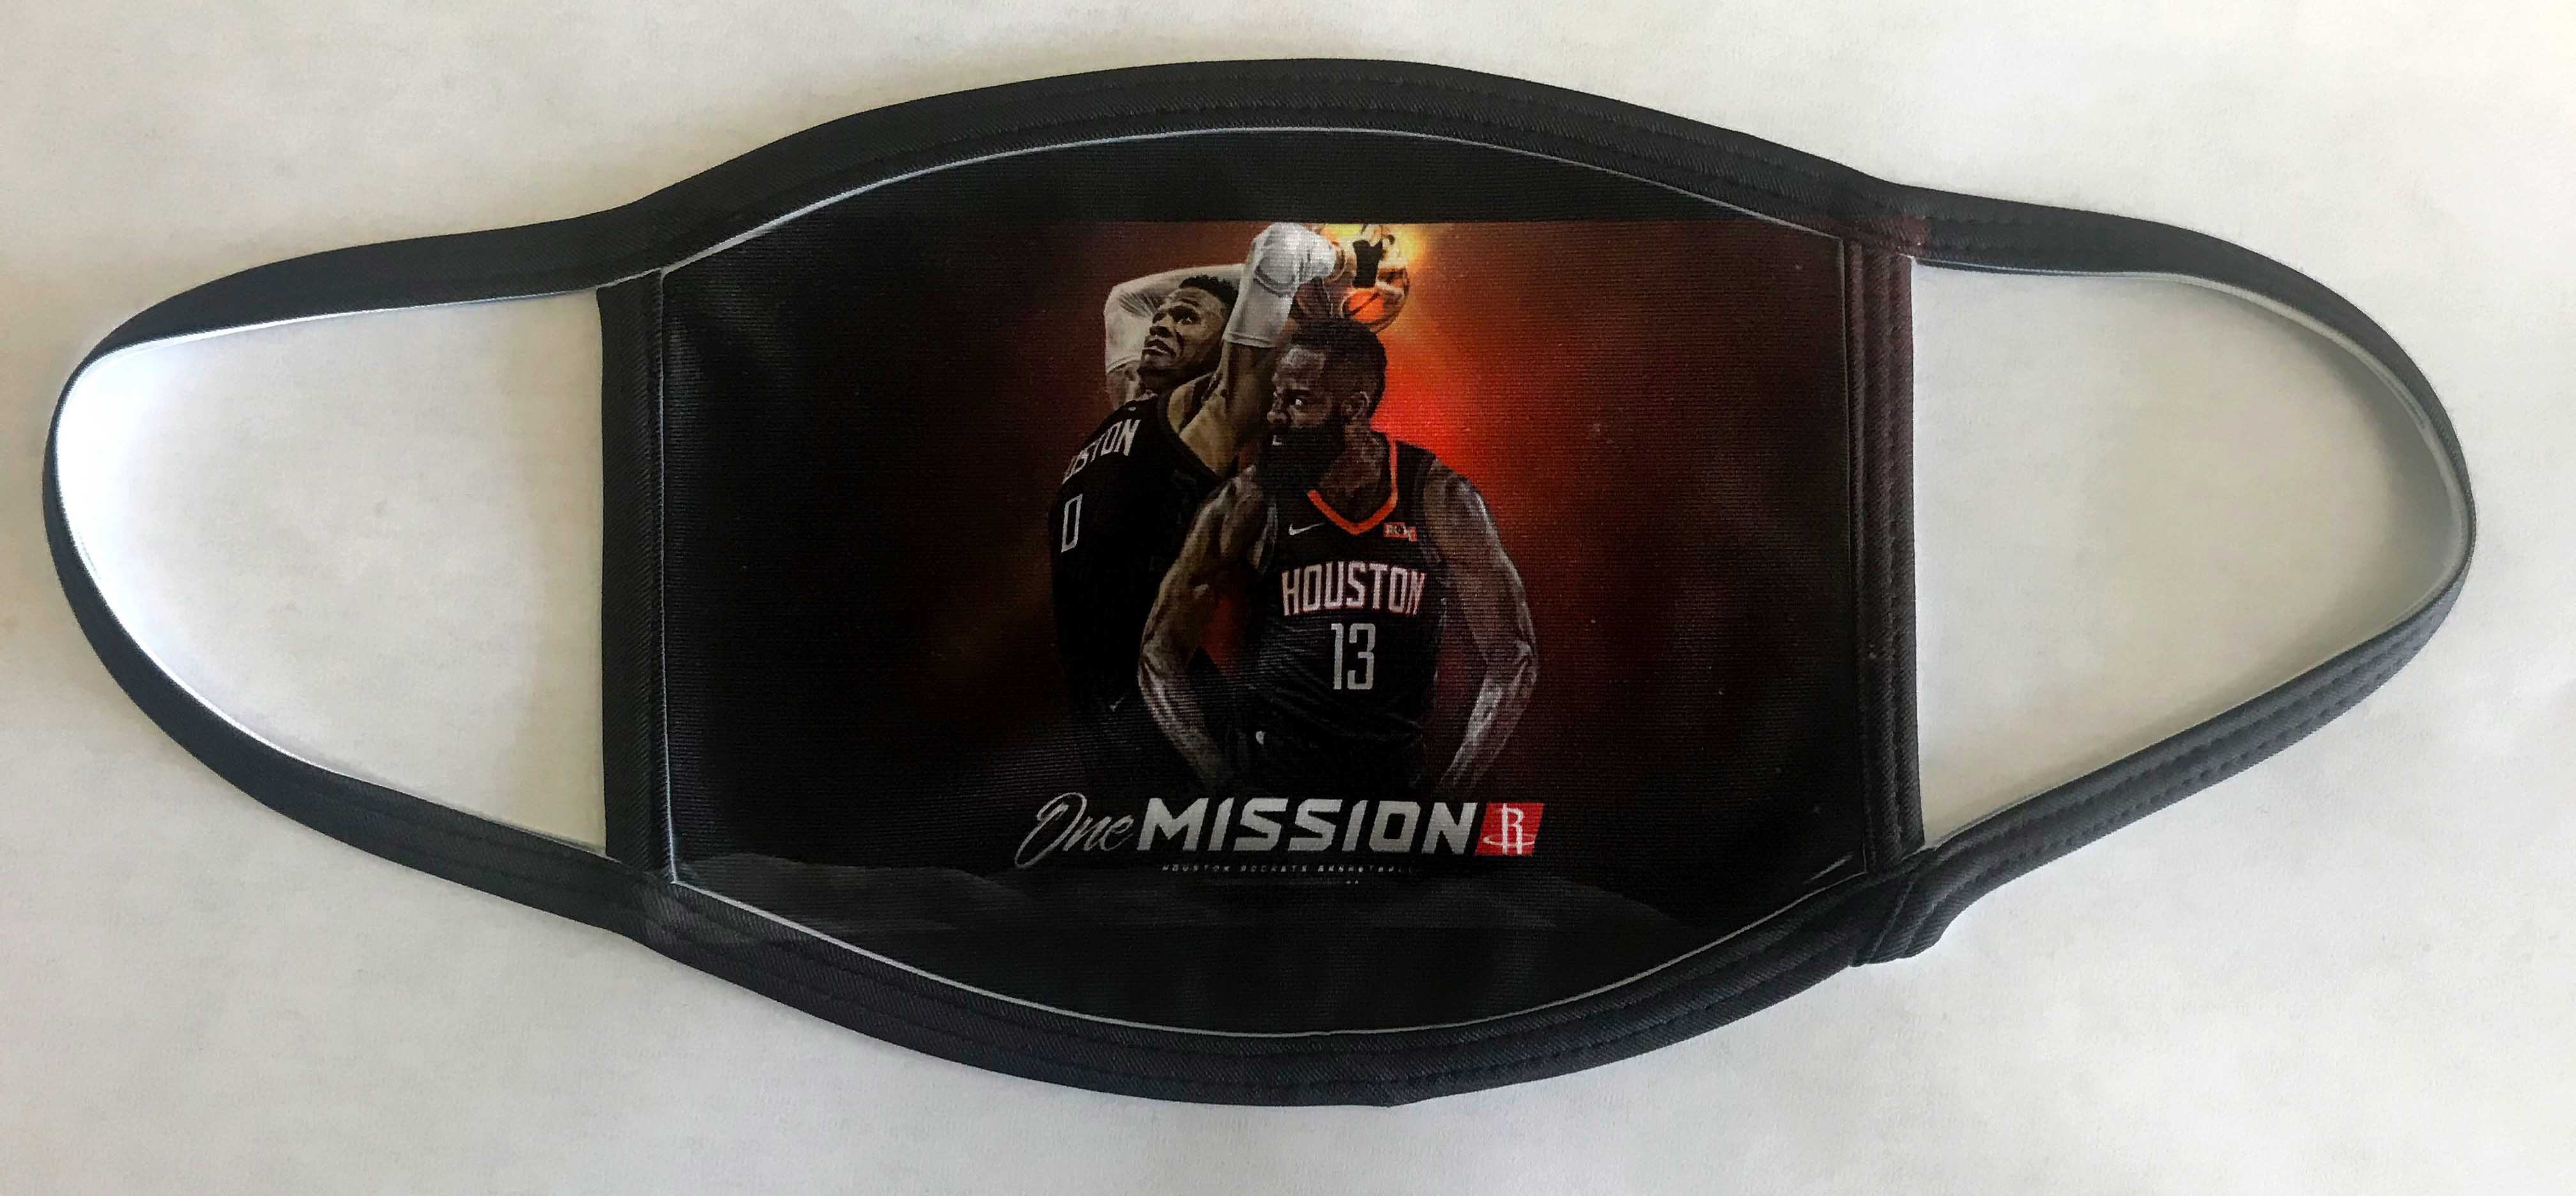 Houston Rockets One Mission black mask